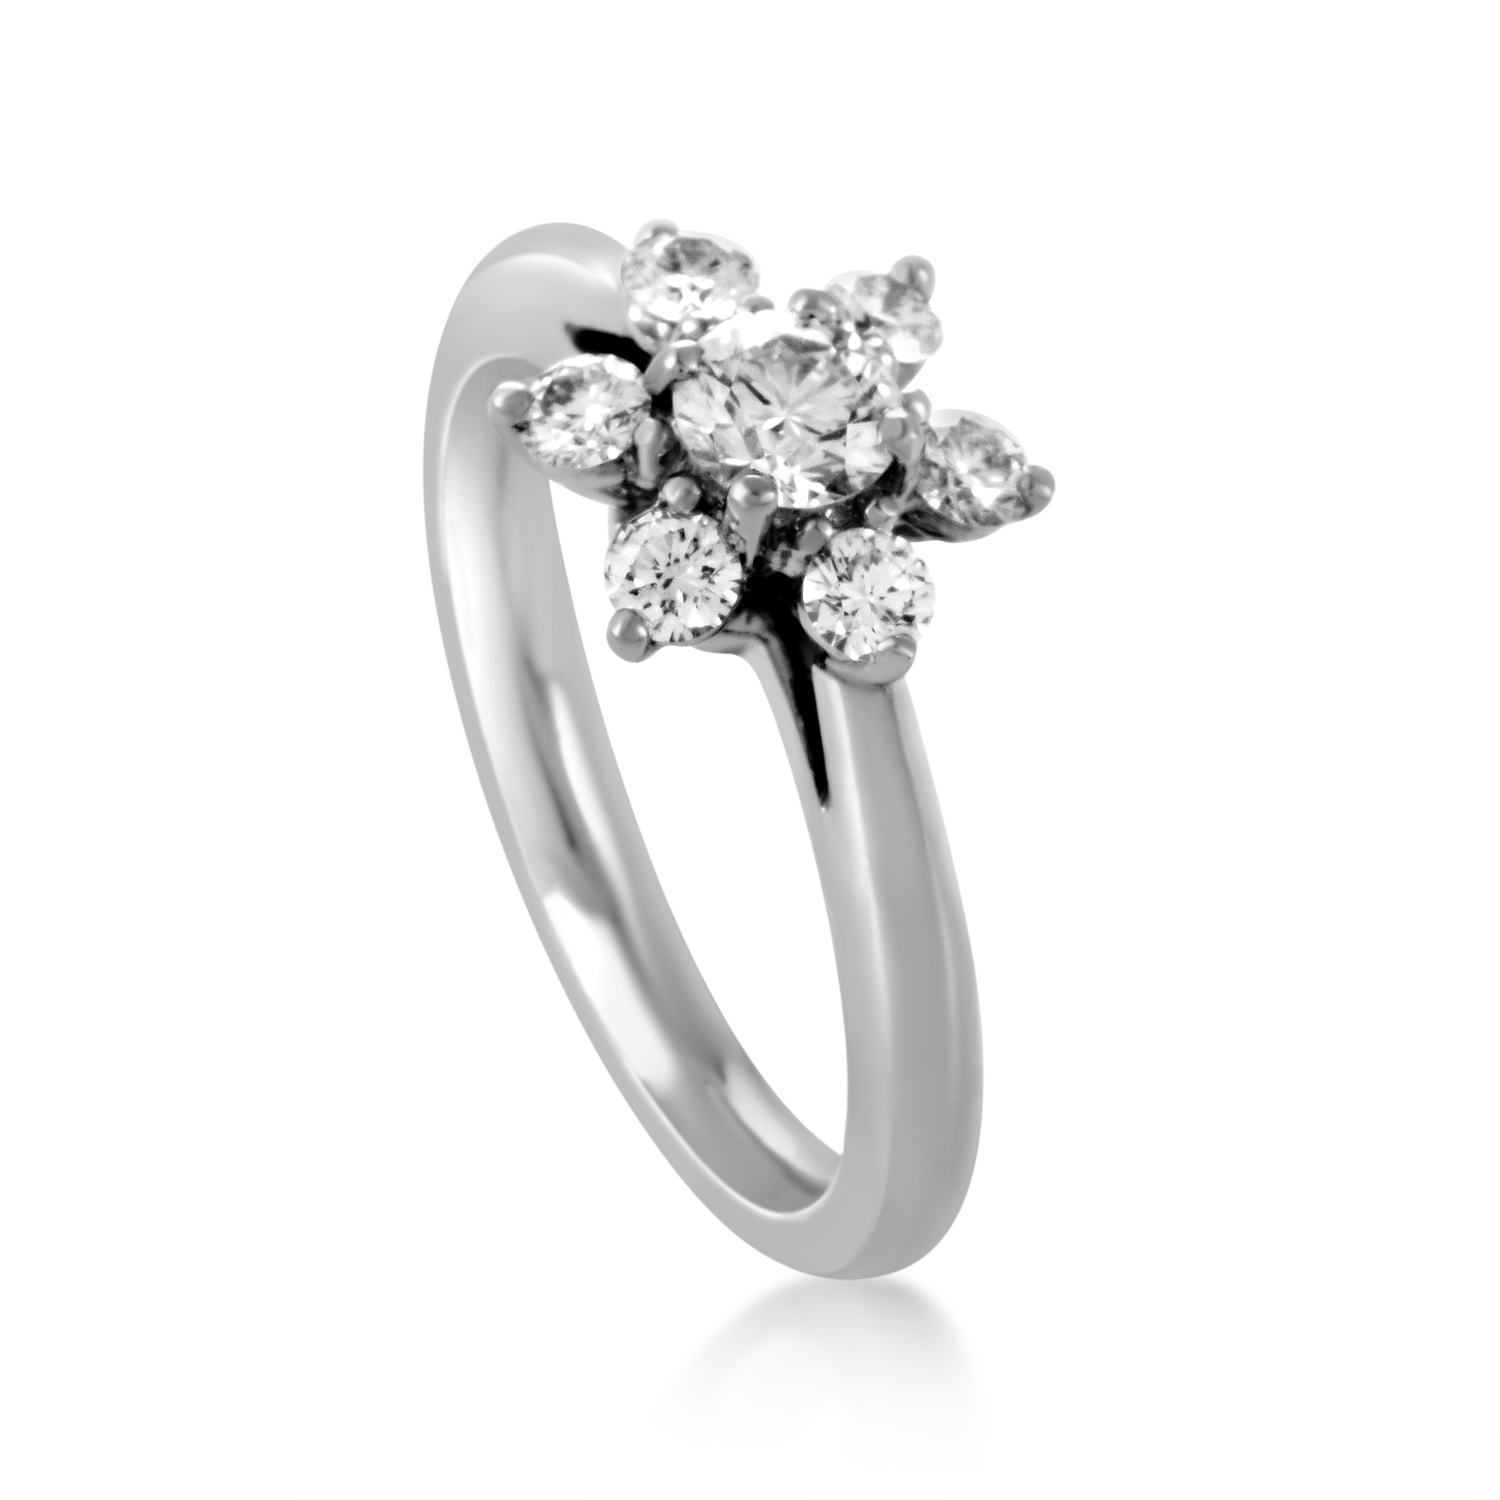 Tiffany & Co. Women's Platinum Diamond Flower Ring AK1B1829